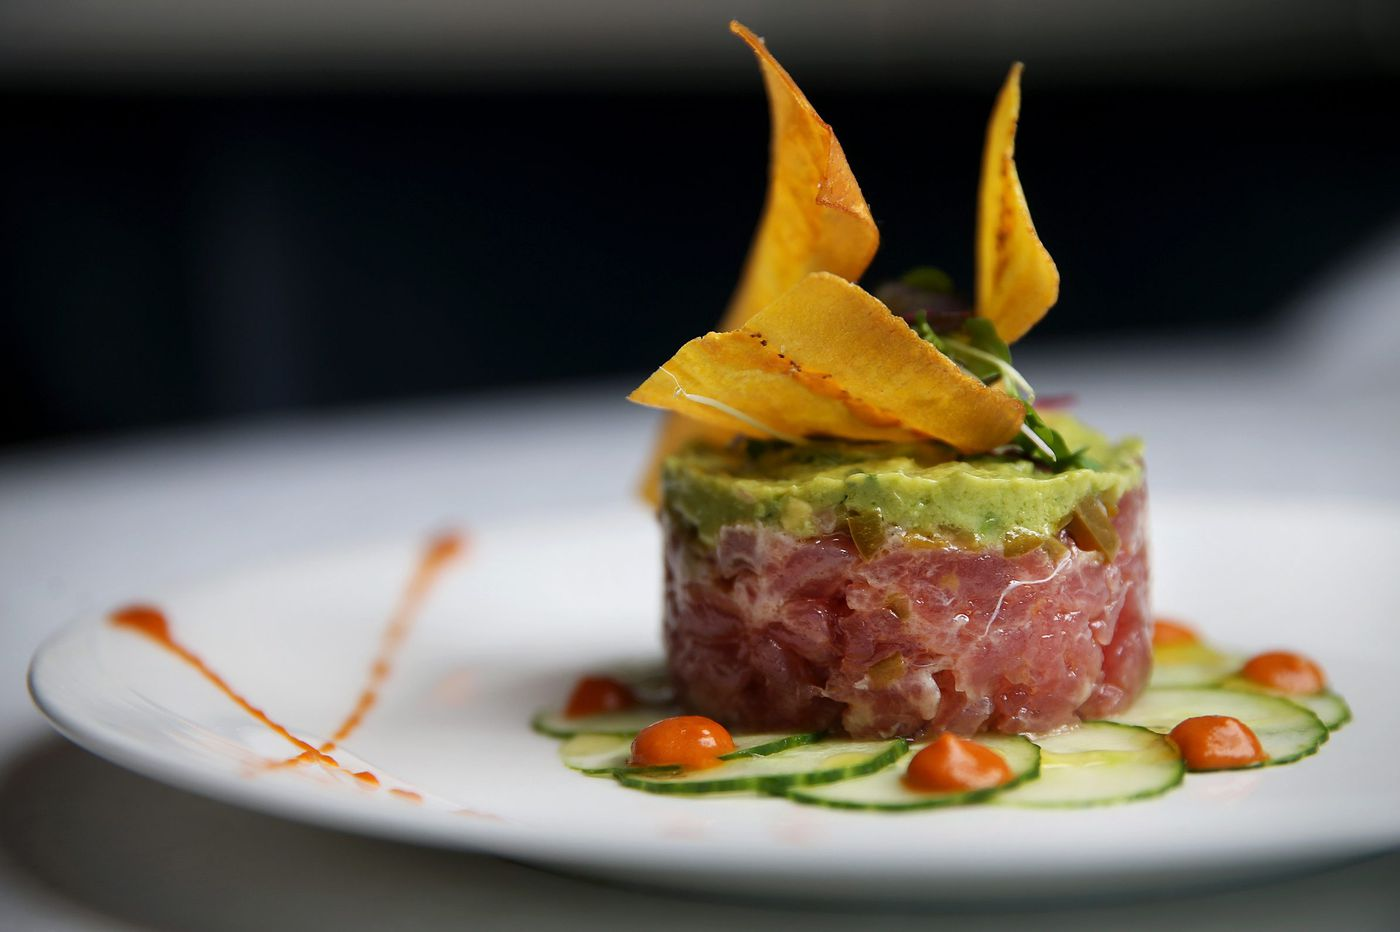 Atlantic City restaurants: New casinos, diverse independent spots create rising culinary energy